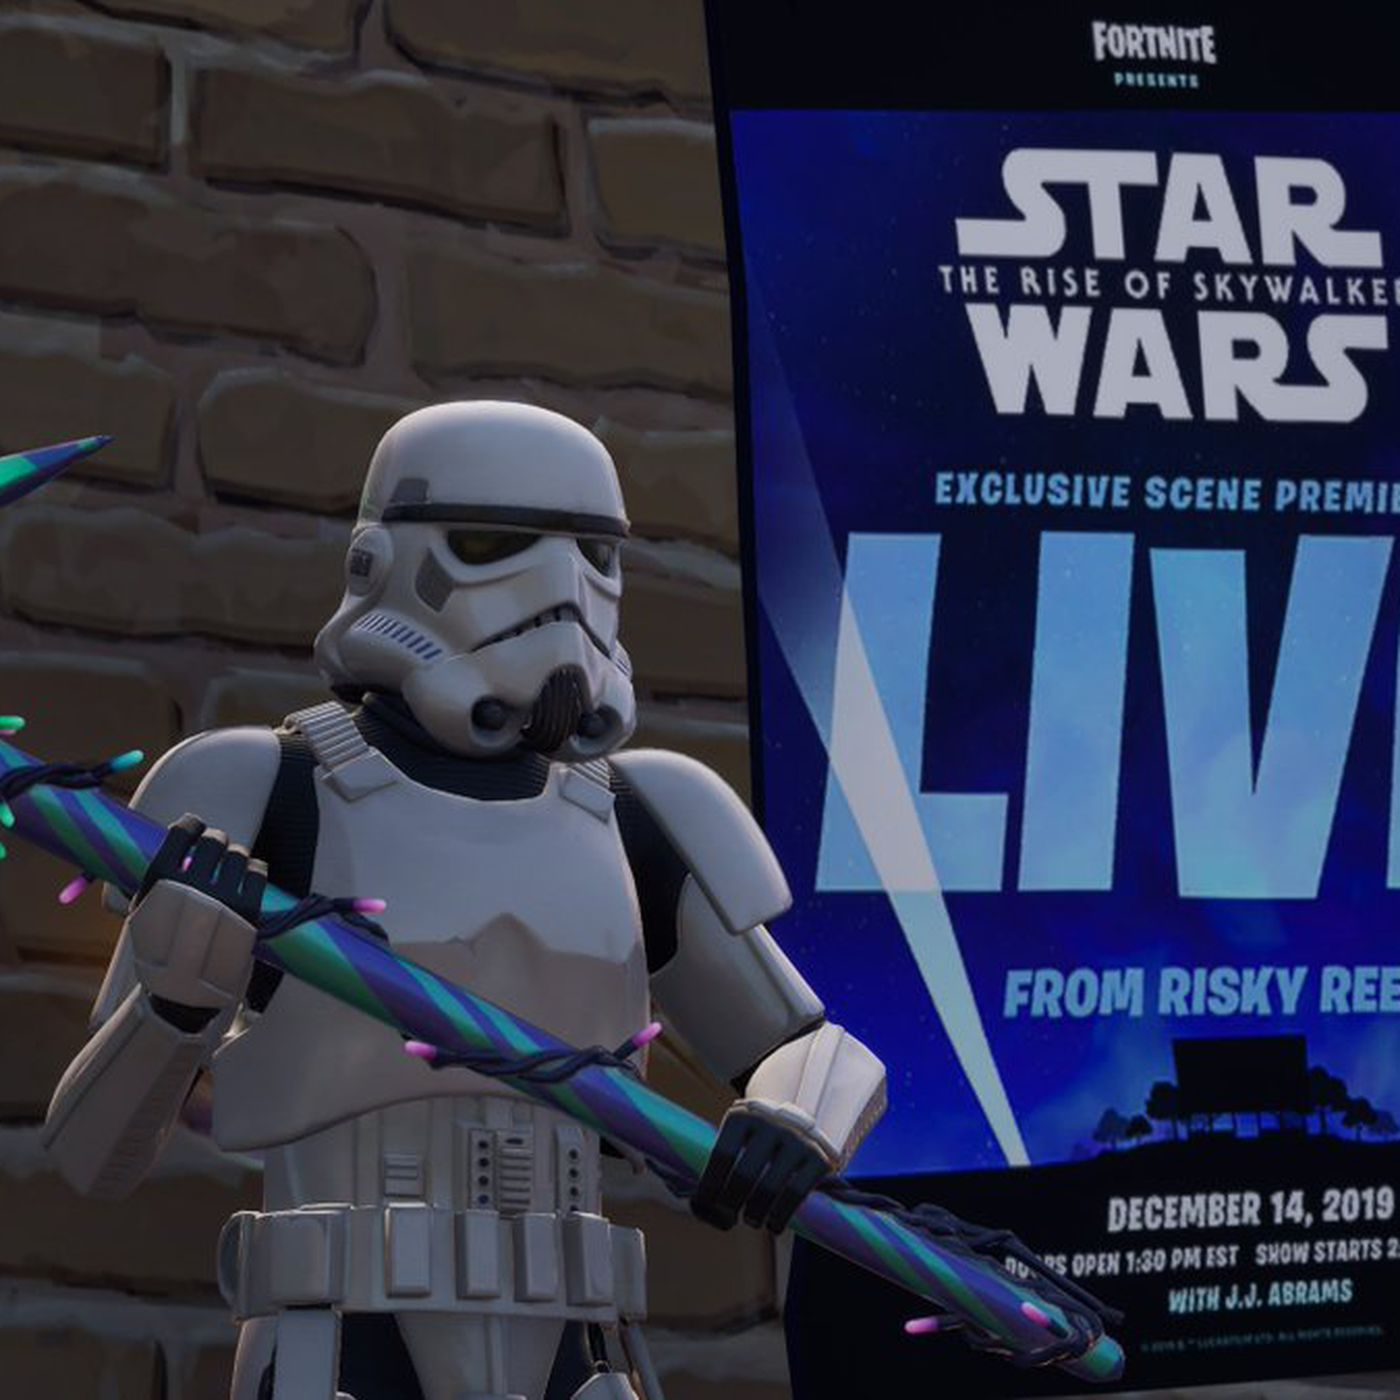 Fortnite S Movie Theater Will Show A Scene From Star Wars The Rise Of Skywalker Polygon